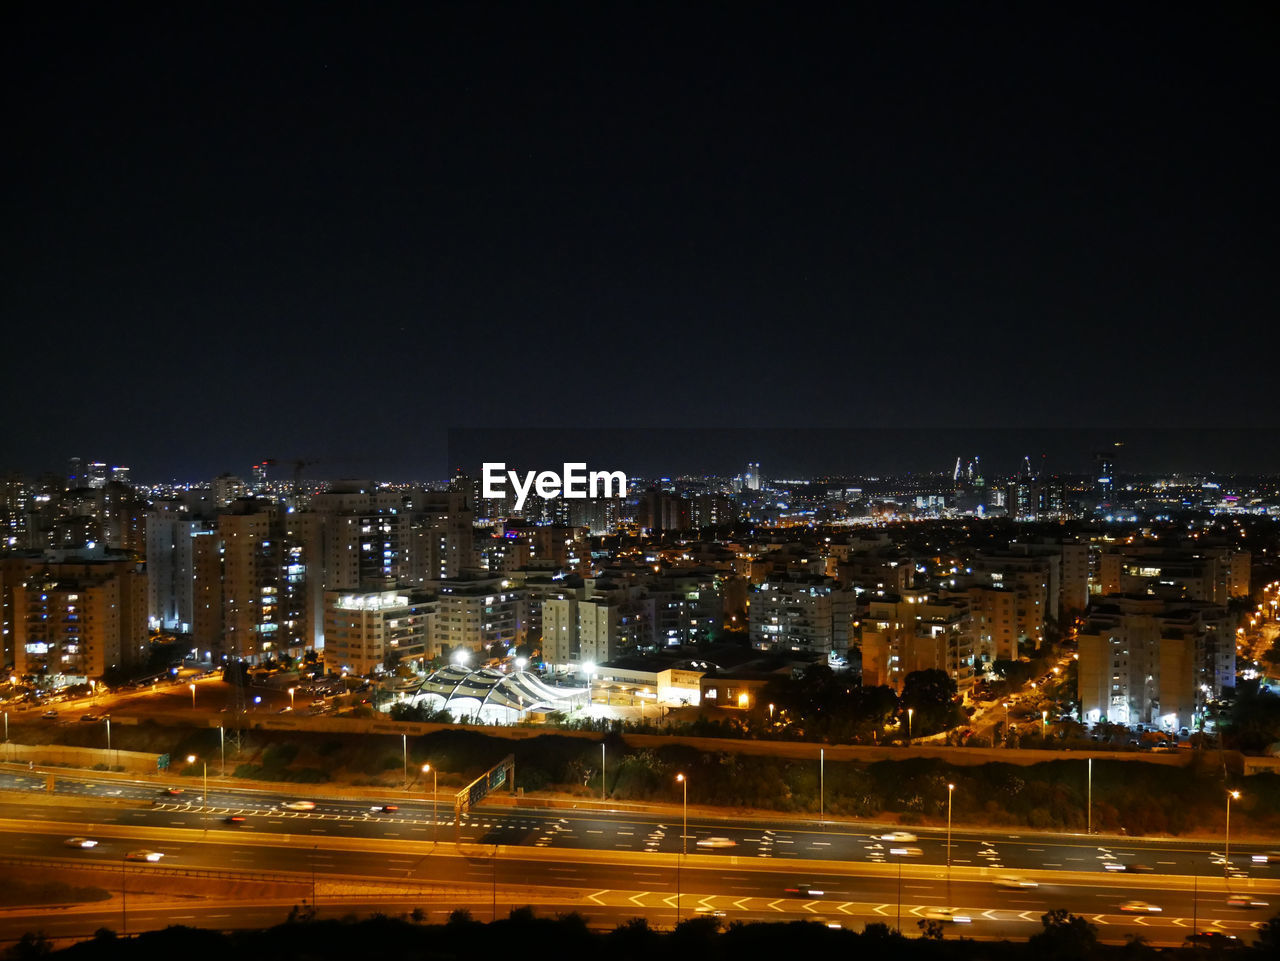 illuminated, city, night, architecture, building exterior, built structure, cityscape, building, no people, copy space, residential district, sky, modern, outdoors, nature, street, urban skyline, vitality, clear sky, office building exterior, skyscraper